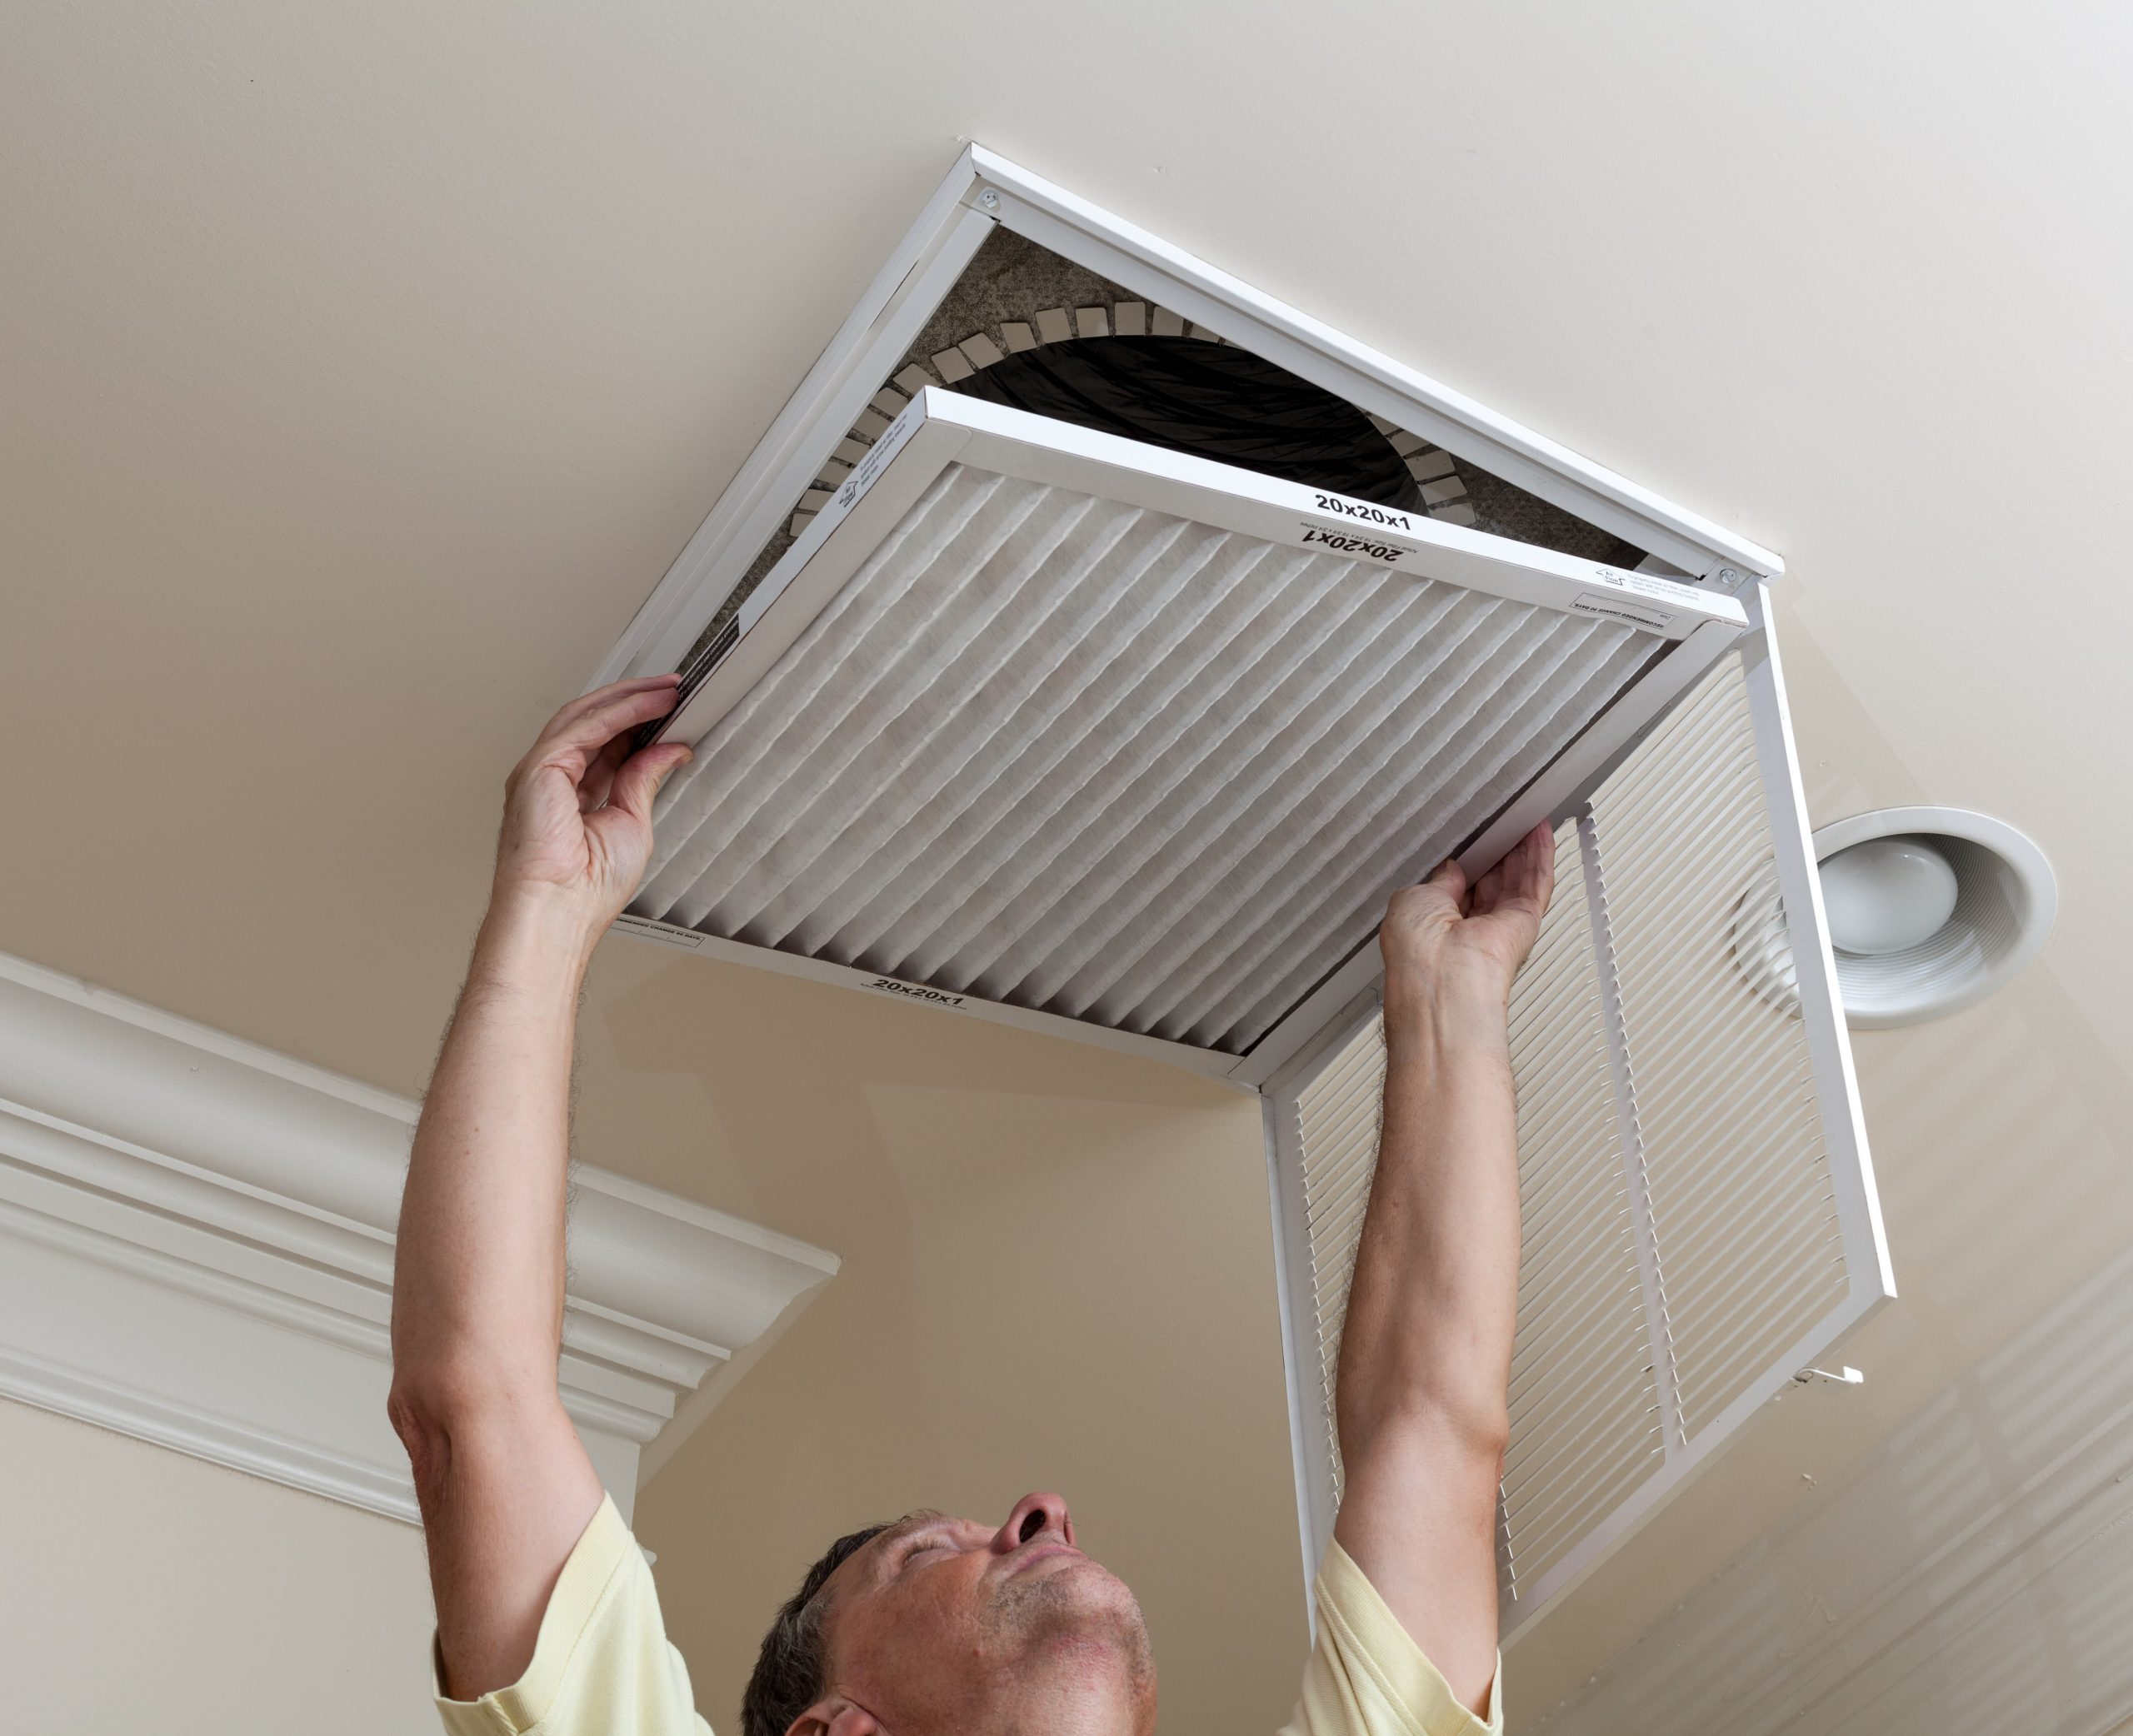 replace your air conditioning filter